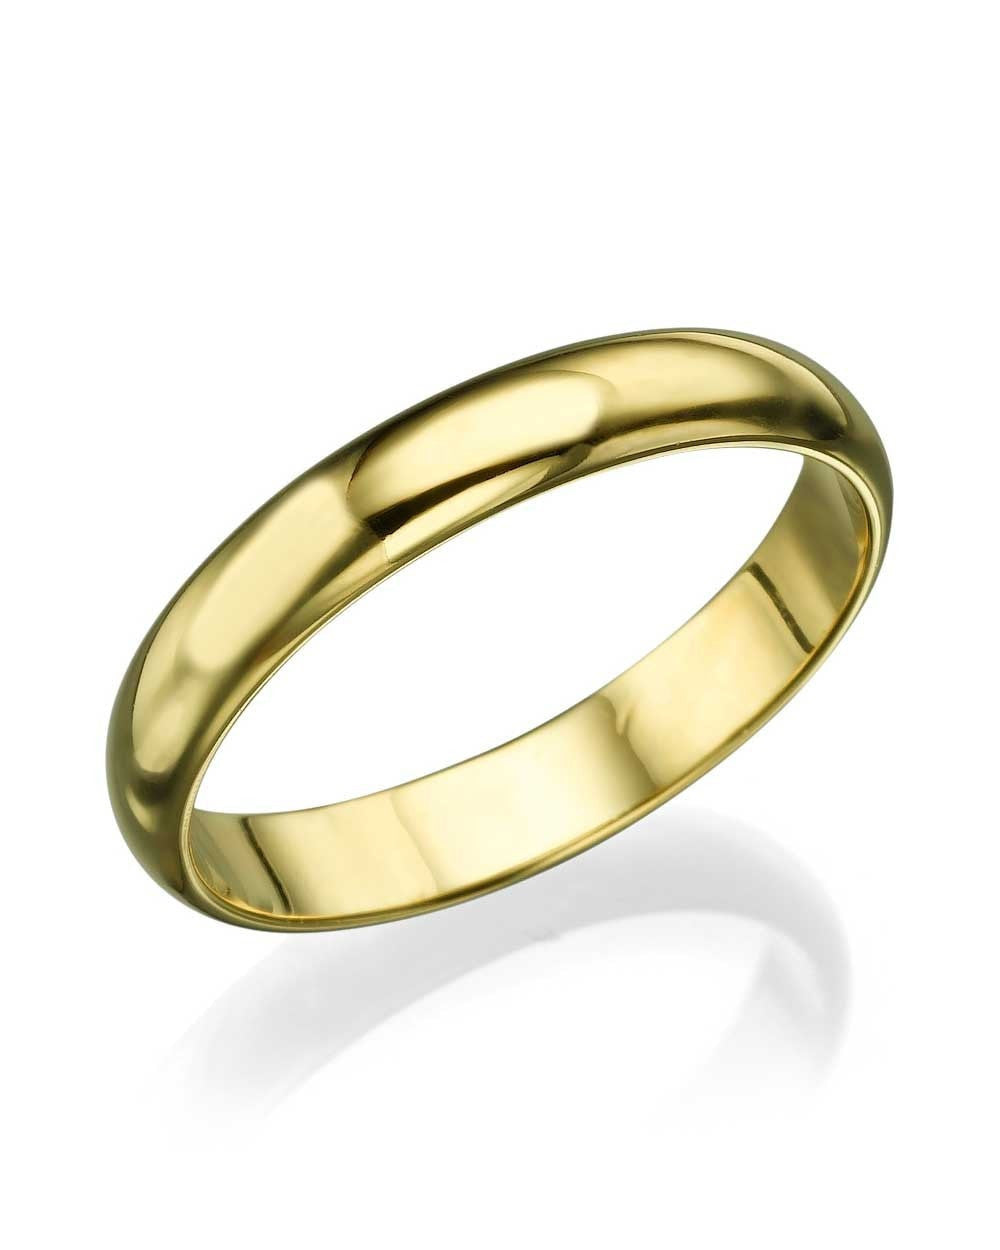 Wedding Rings Yellow Gold Wedding Ring   3.6mm Rounded Plain Wedding Bands